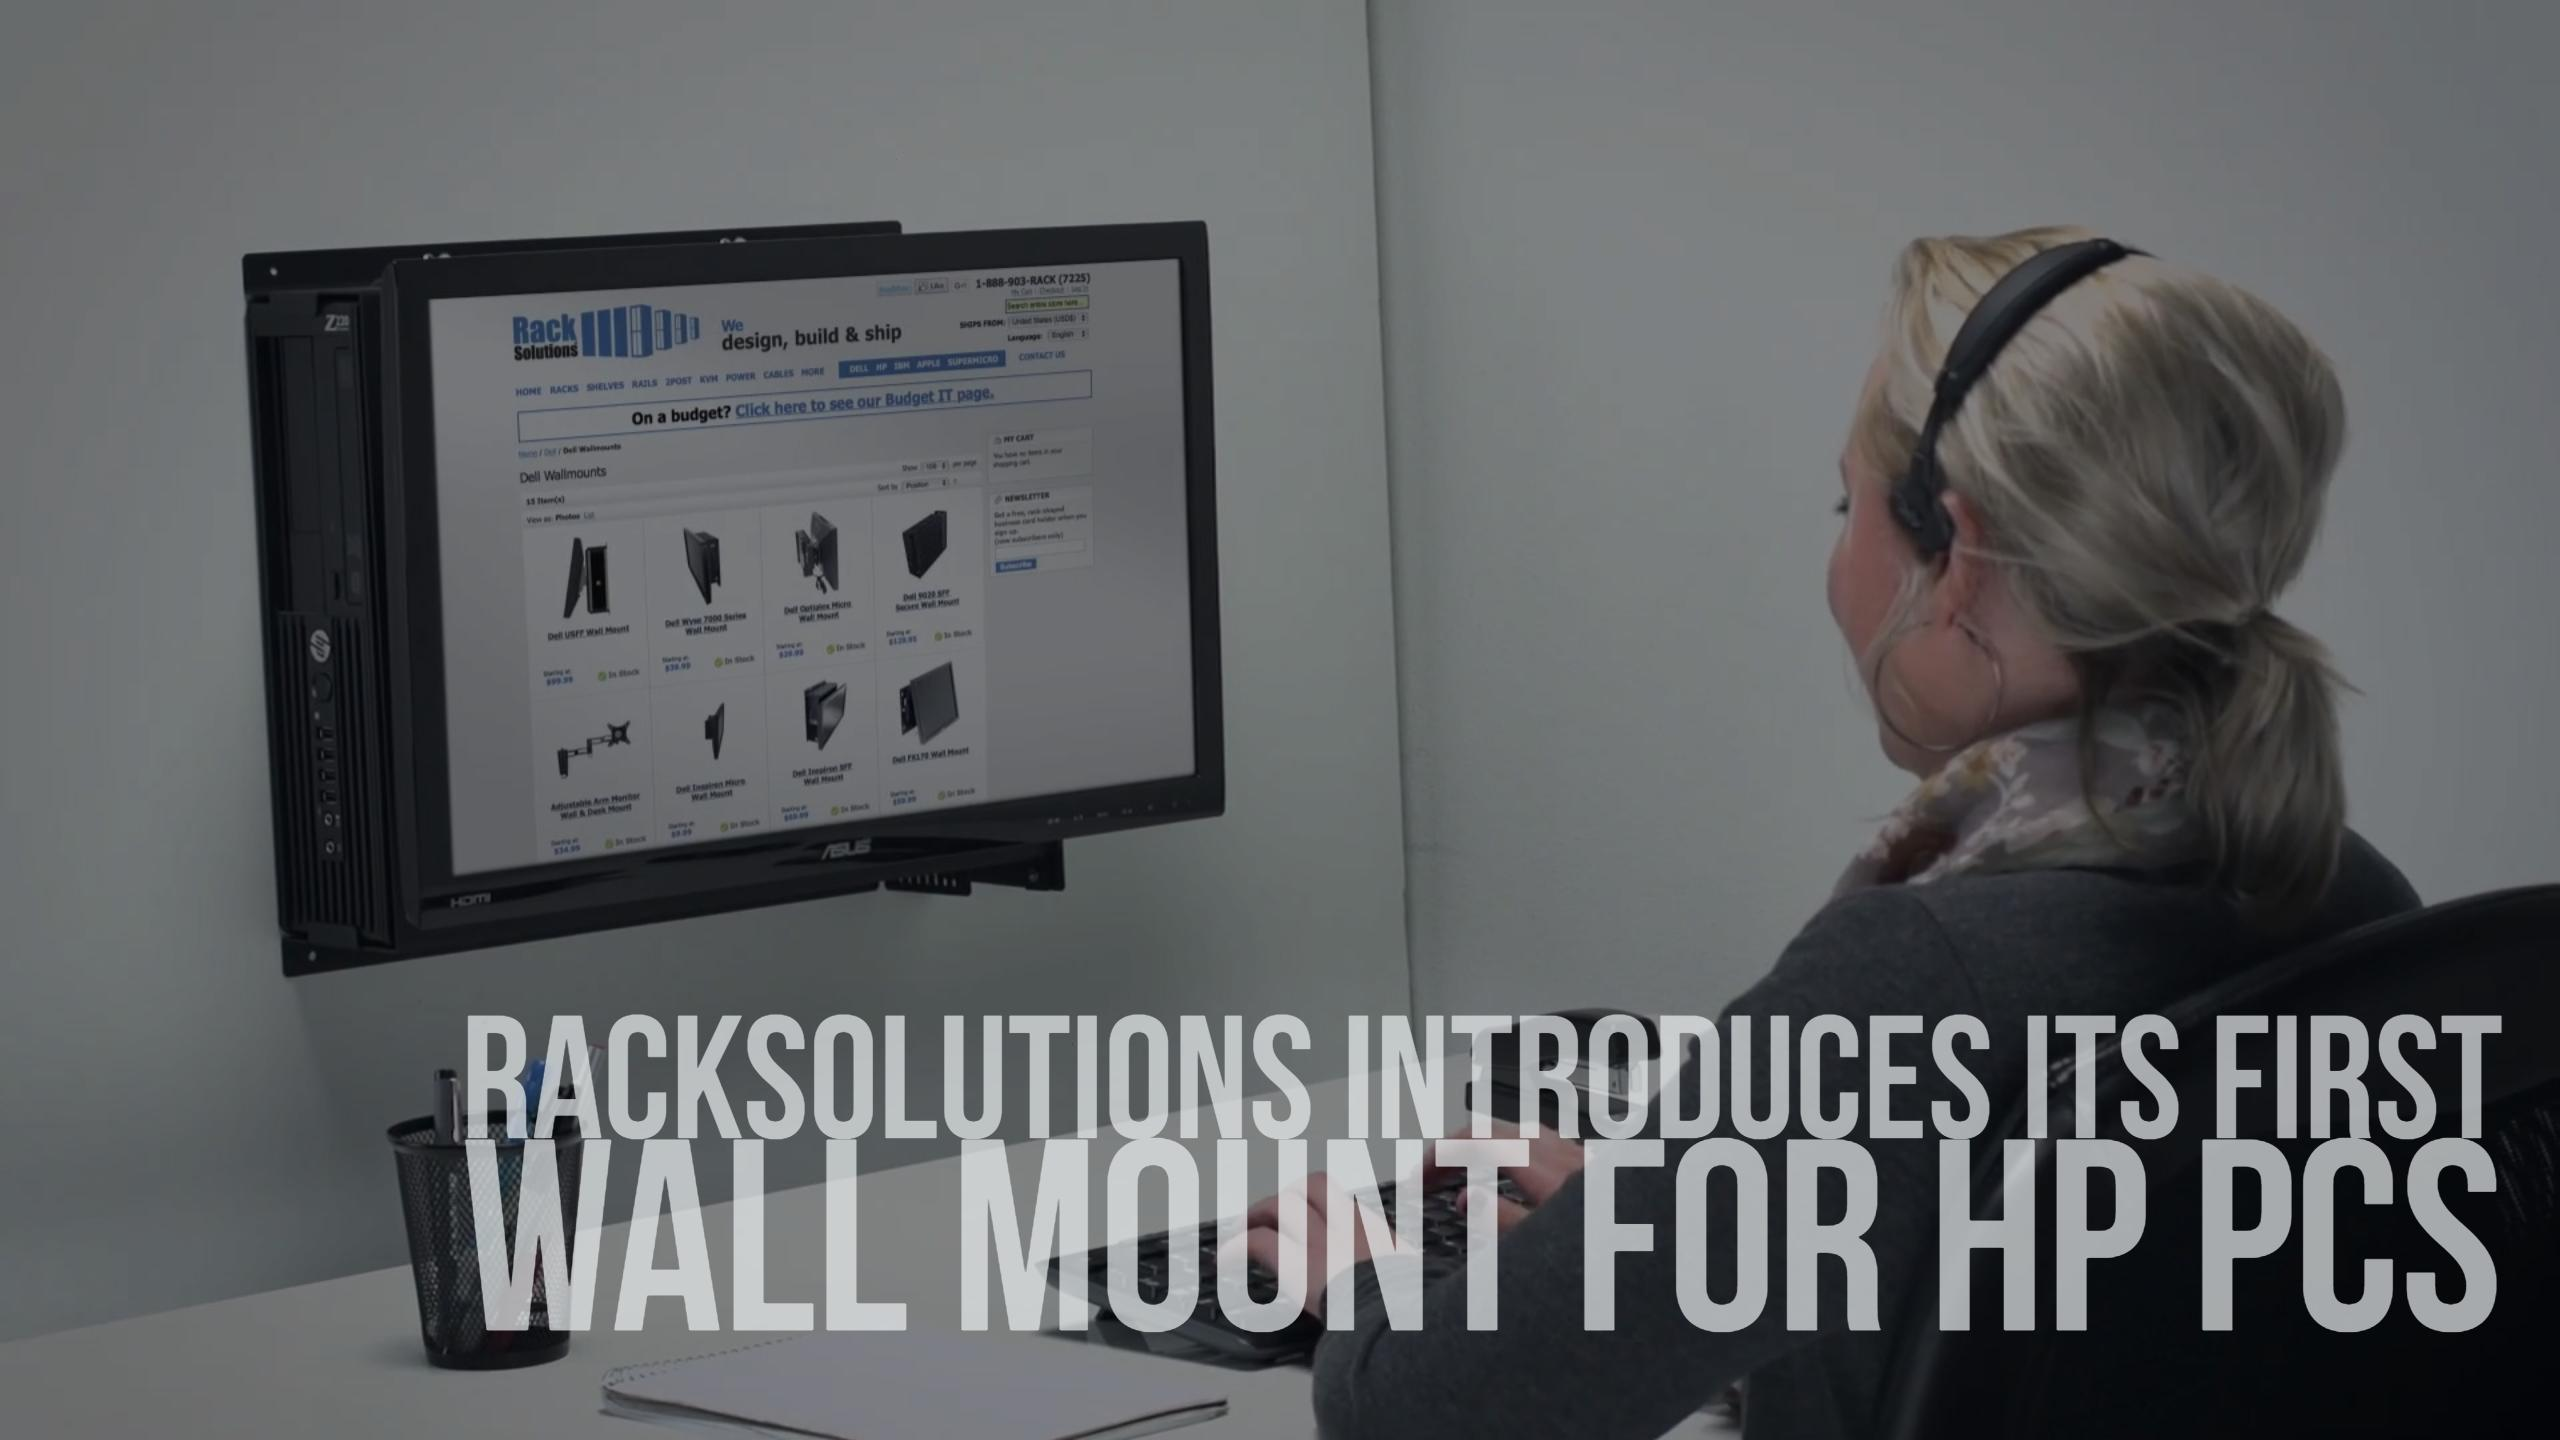 RackSolutions Introduces its first Wall Mount for HP PCs